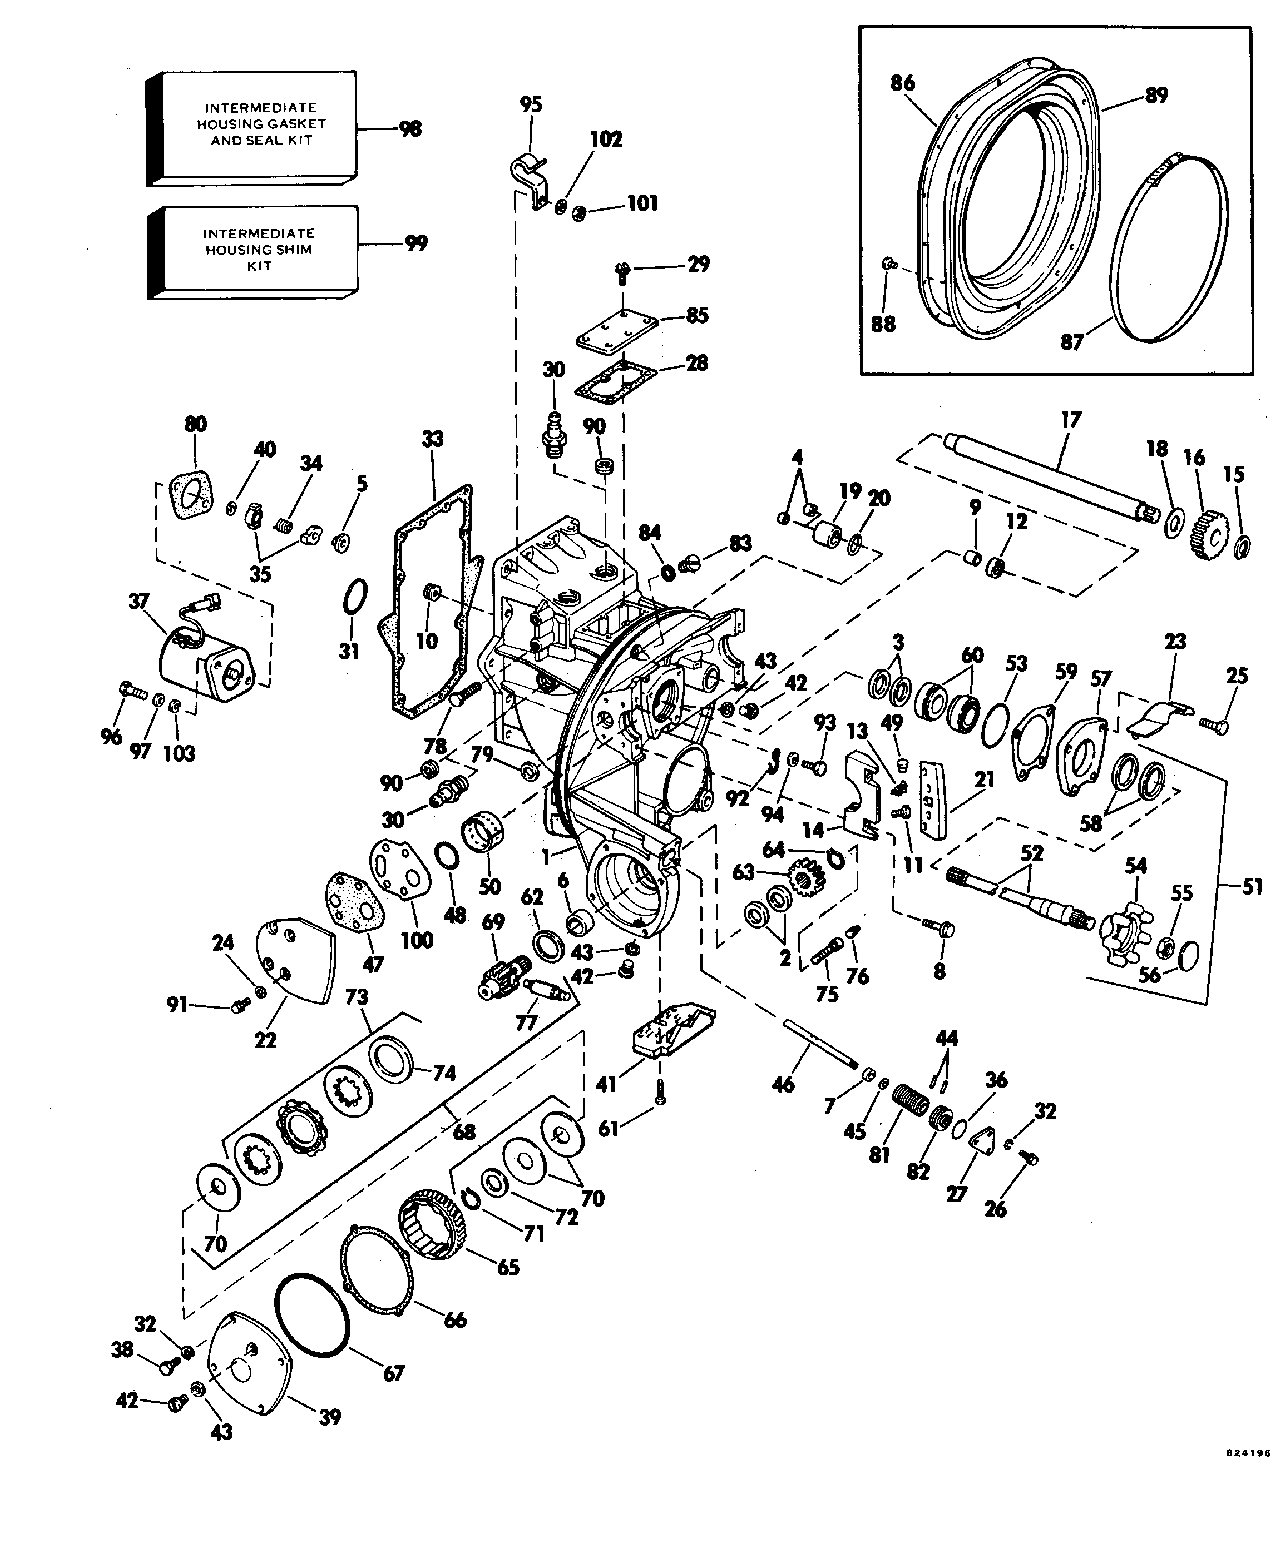 exploded view omc outdrive drawings sterndrive